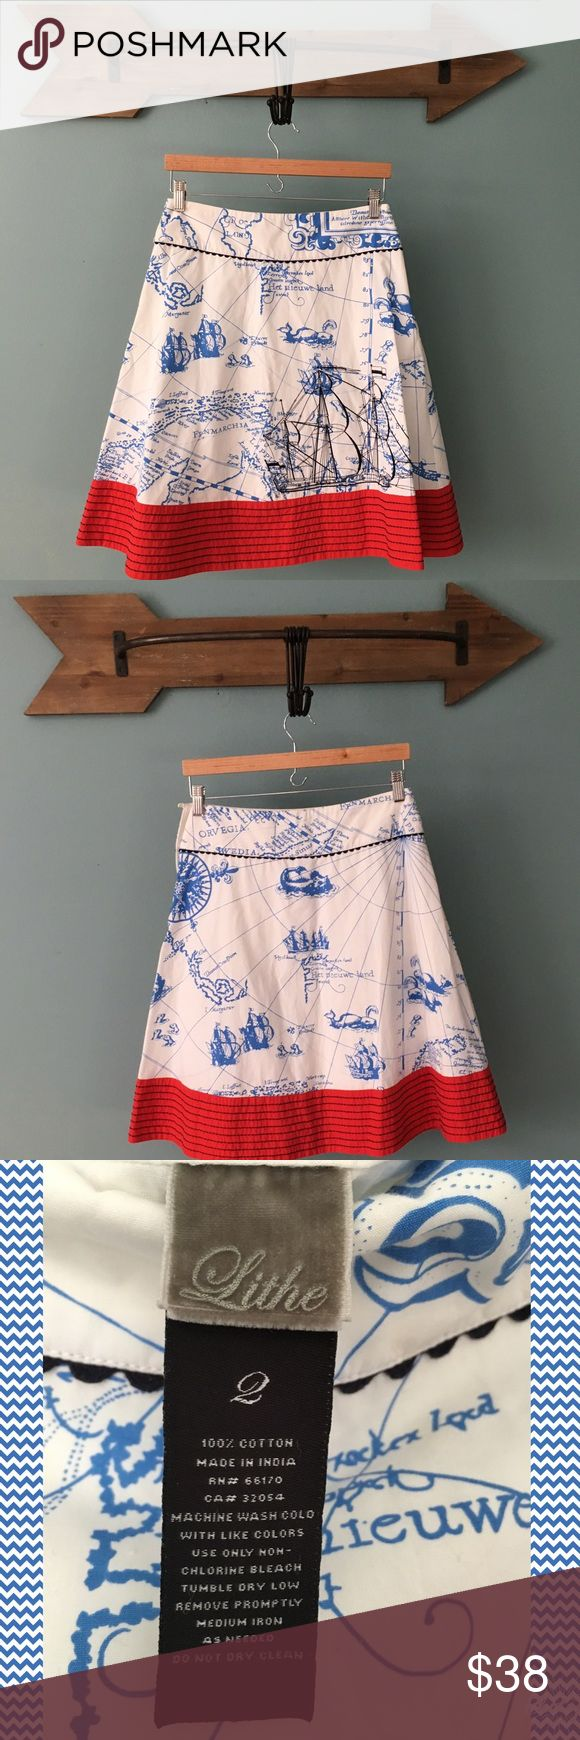 """Anthropologie Lithe Rare Seafarer's Map Skirt Rare Anthro Lithe Seafarer's Map Skirt.  ⚓️From Anthro Archive Website:  An embroidered schooner sails through periwinkle oceans on crisp cotton poplin, buoyed by a vivid red border. By Lithe. Side zip Cotton; cotton lining Machine wash 23""""L  🚭Nonsmoking Home. ✅Pet friendly. We have a Morkie. 🚫Sorry No Trading. Anthropologie Skirts Midi"""